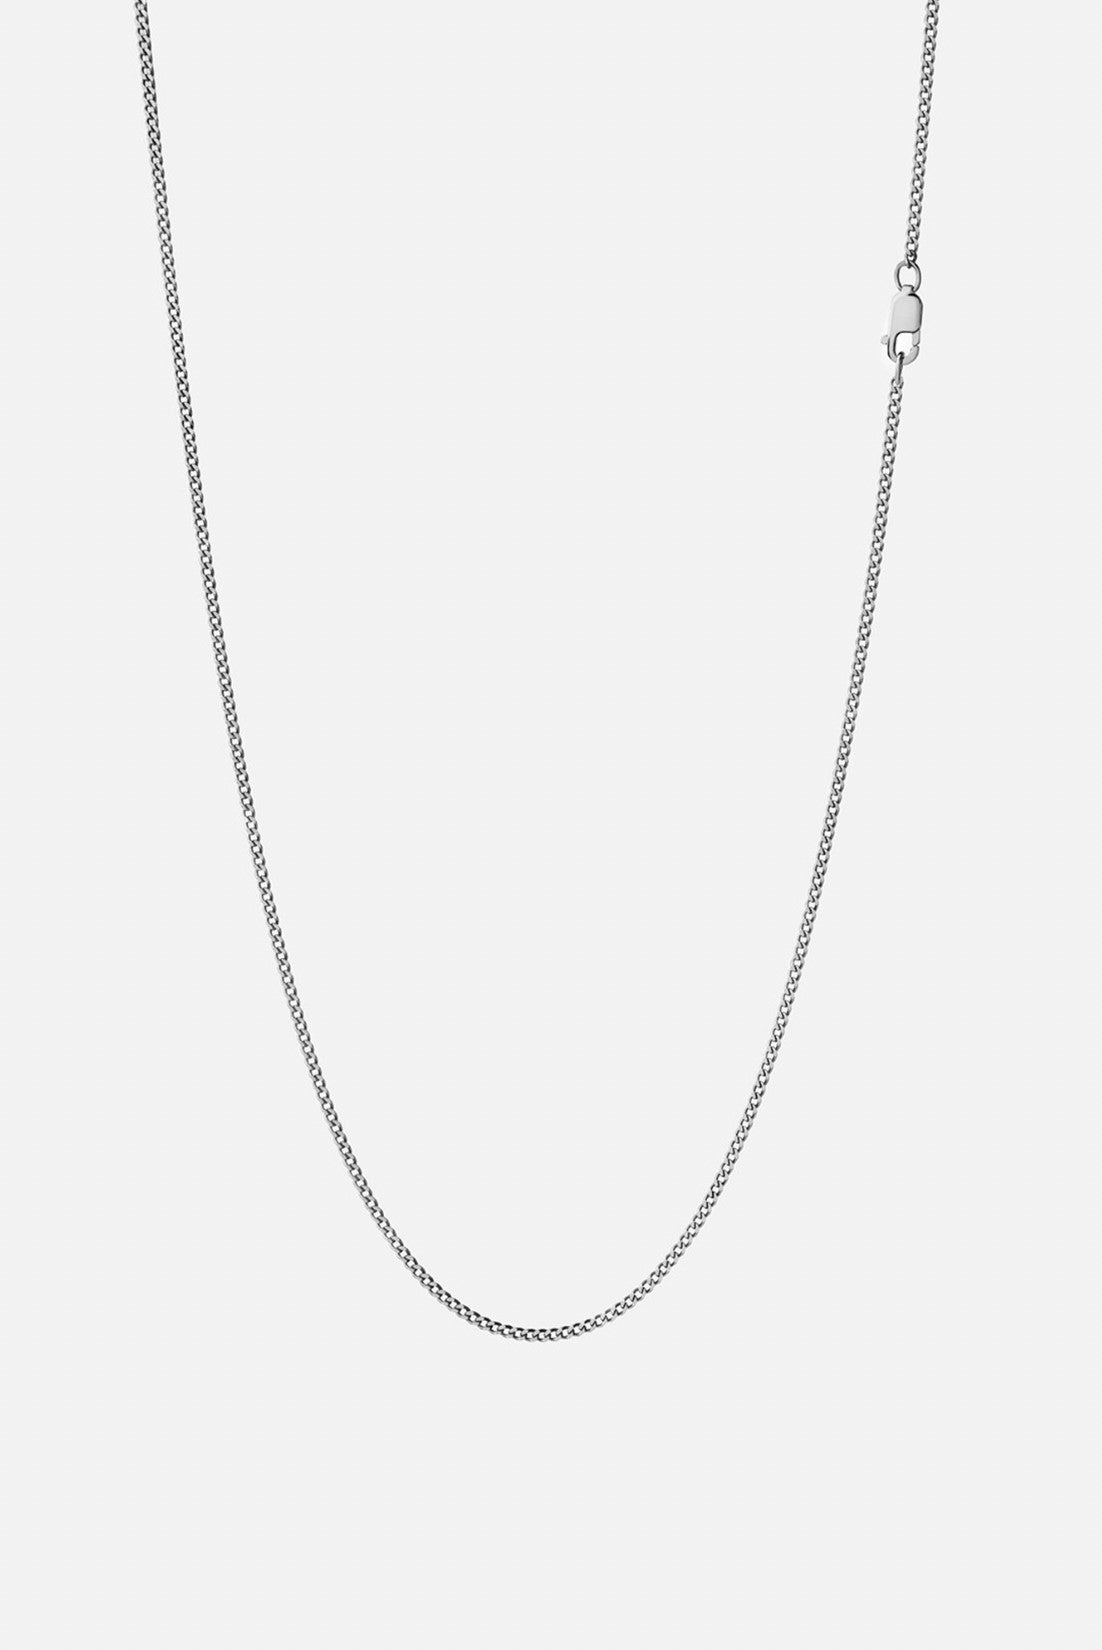 Miansai 1.3mm Cuban Chain Necklace Sterling Silver